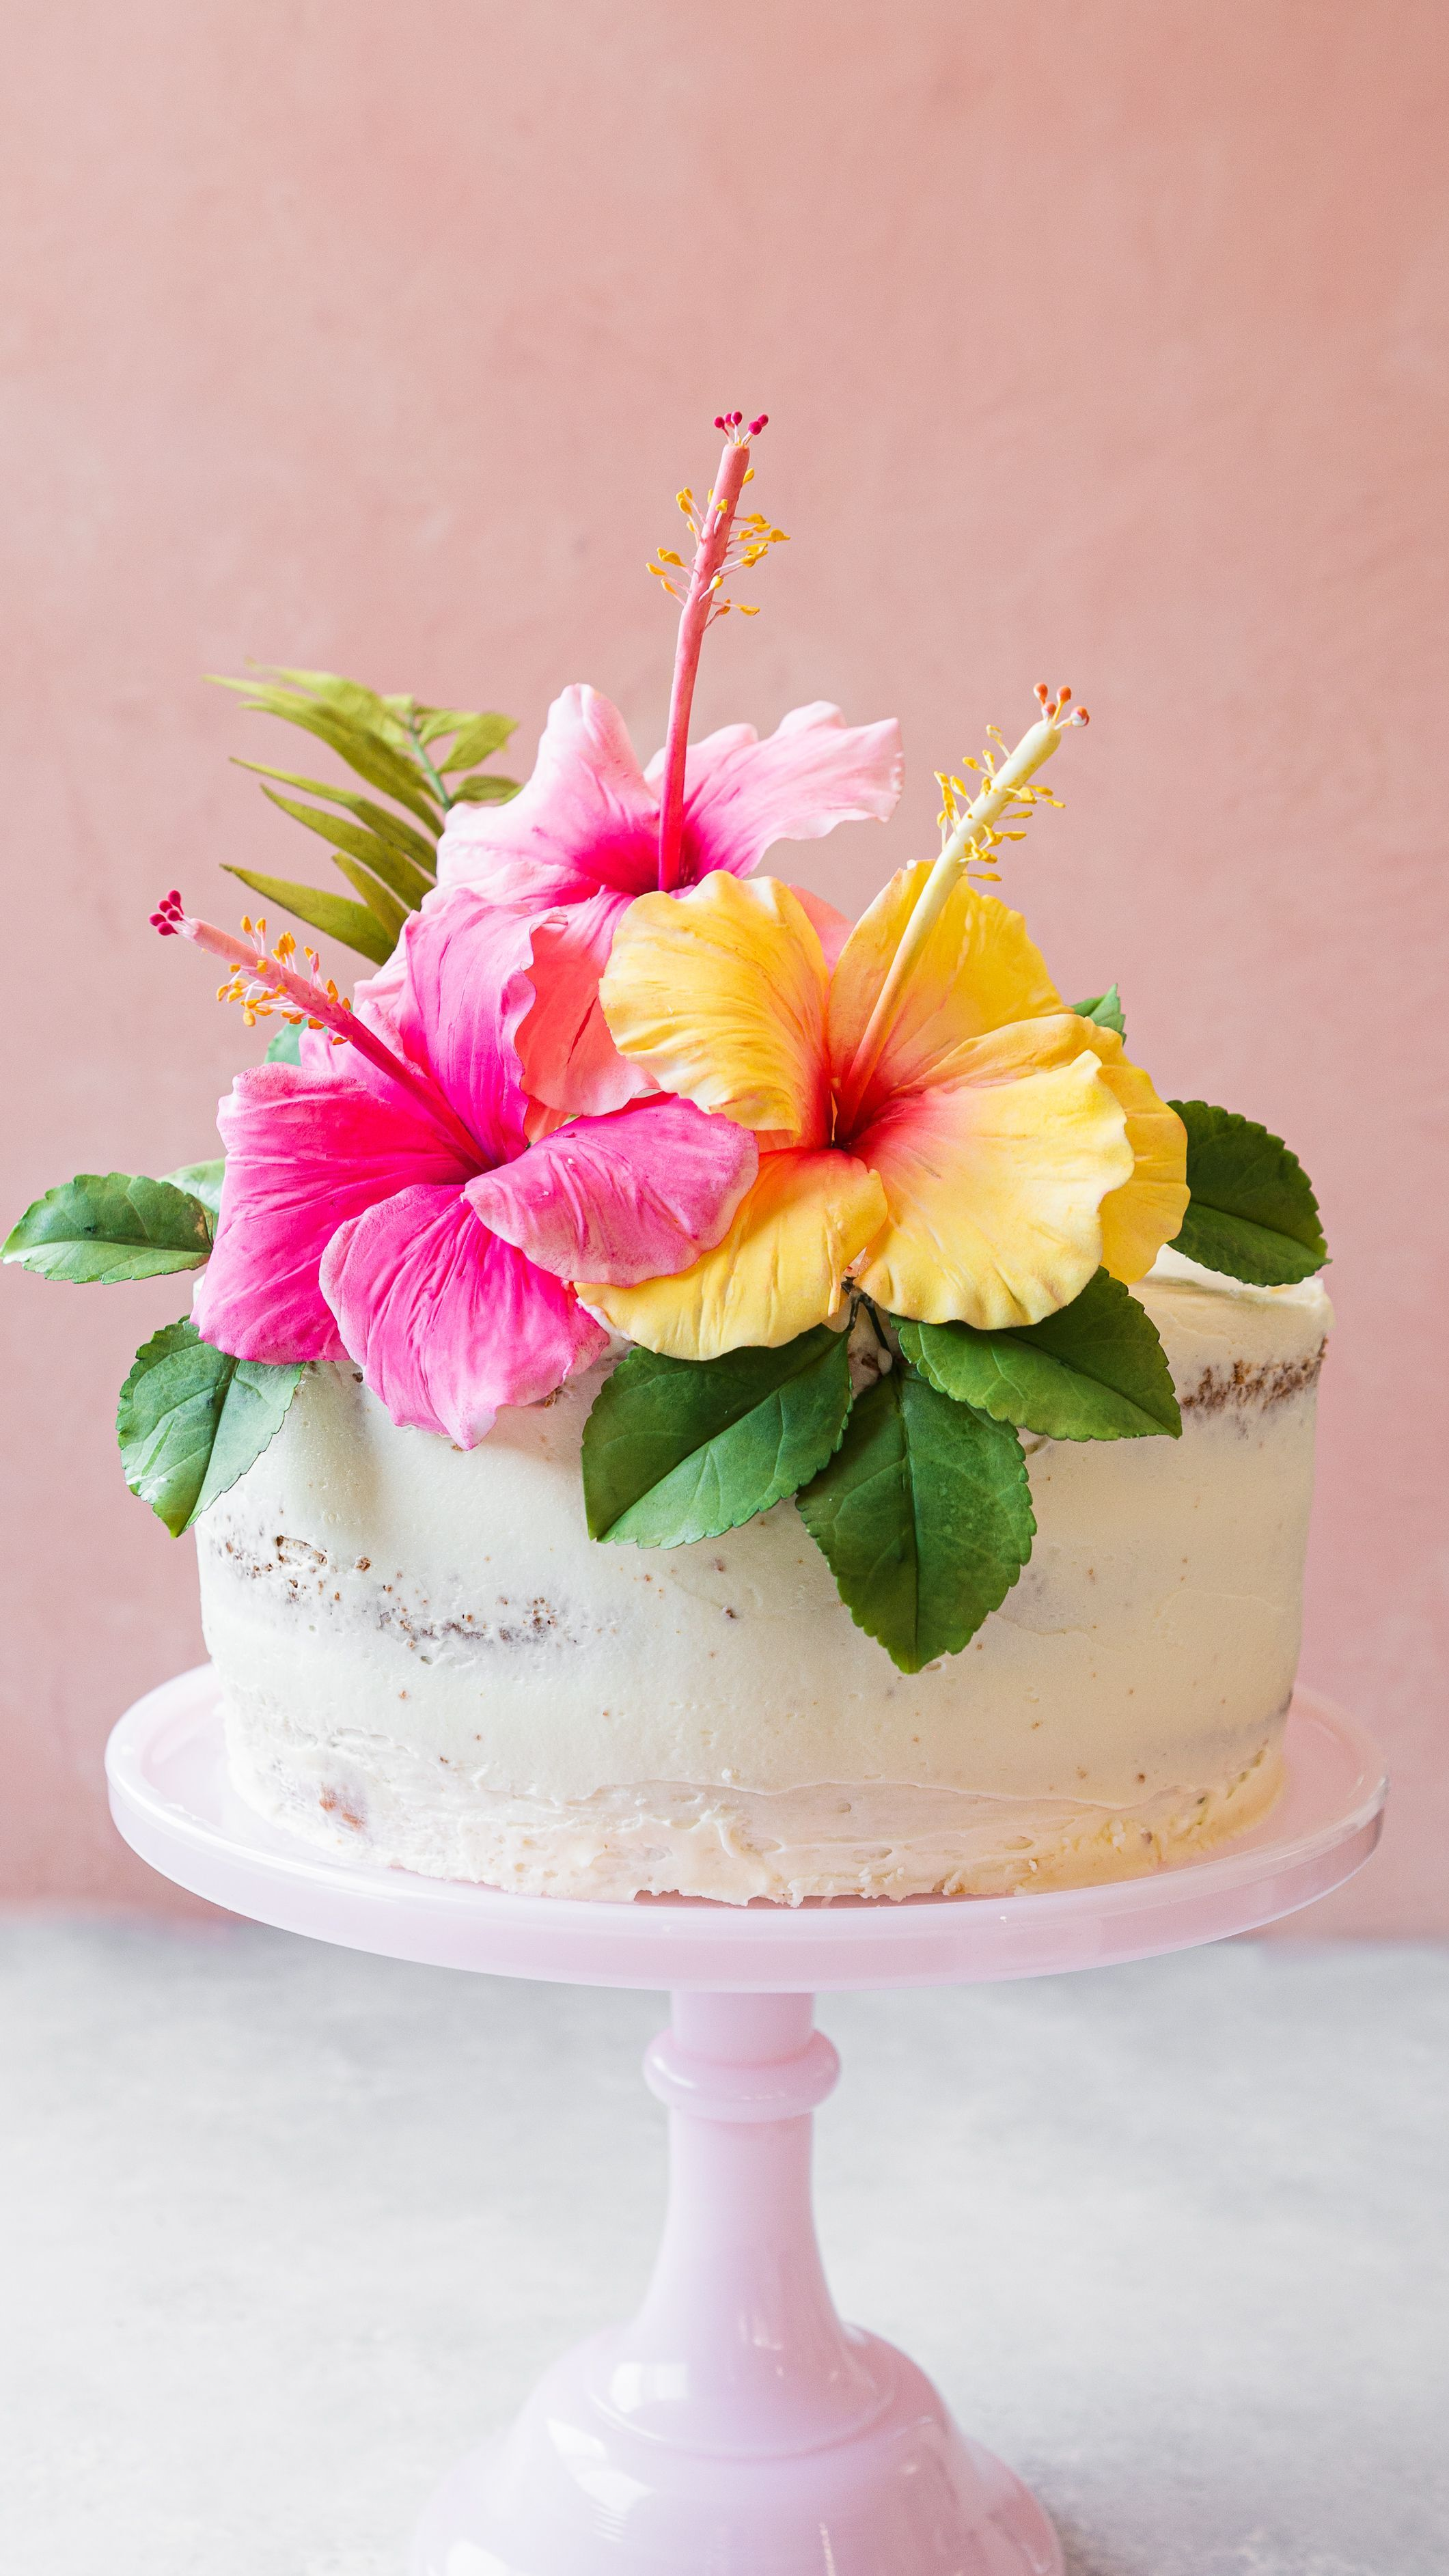 Want To Know The Inside Scoop On How To Make Gorgeous Sugar Flowers For Cakes And Confections Look No Hibiscus Cake Edible Flowers Cake Tropical Birthday Cake